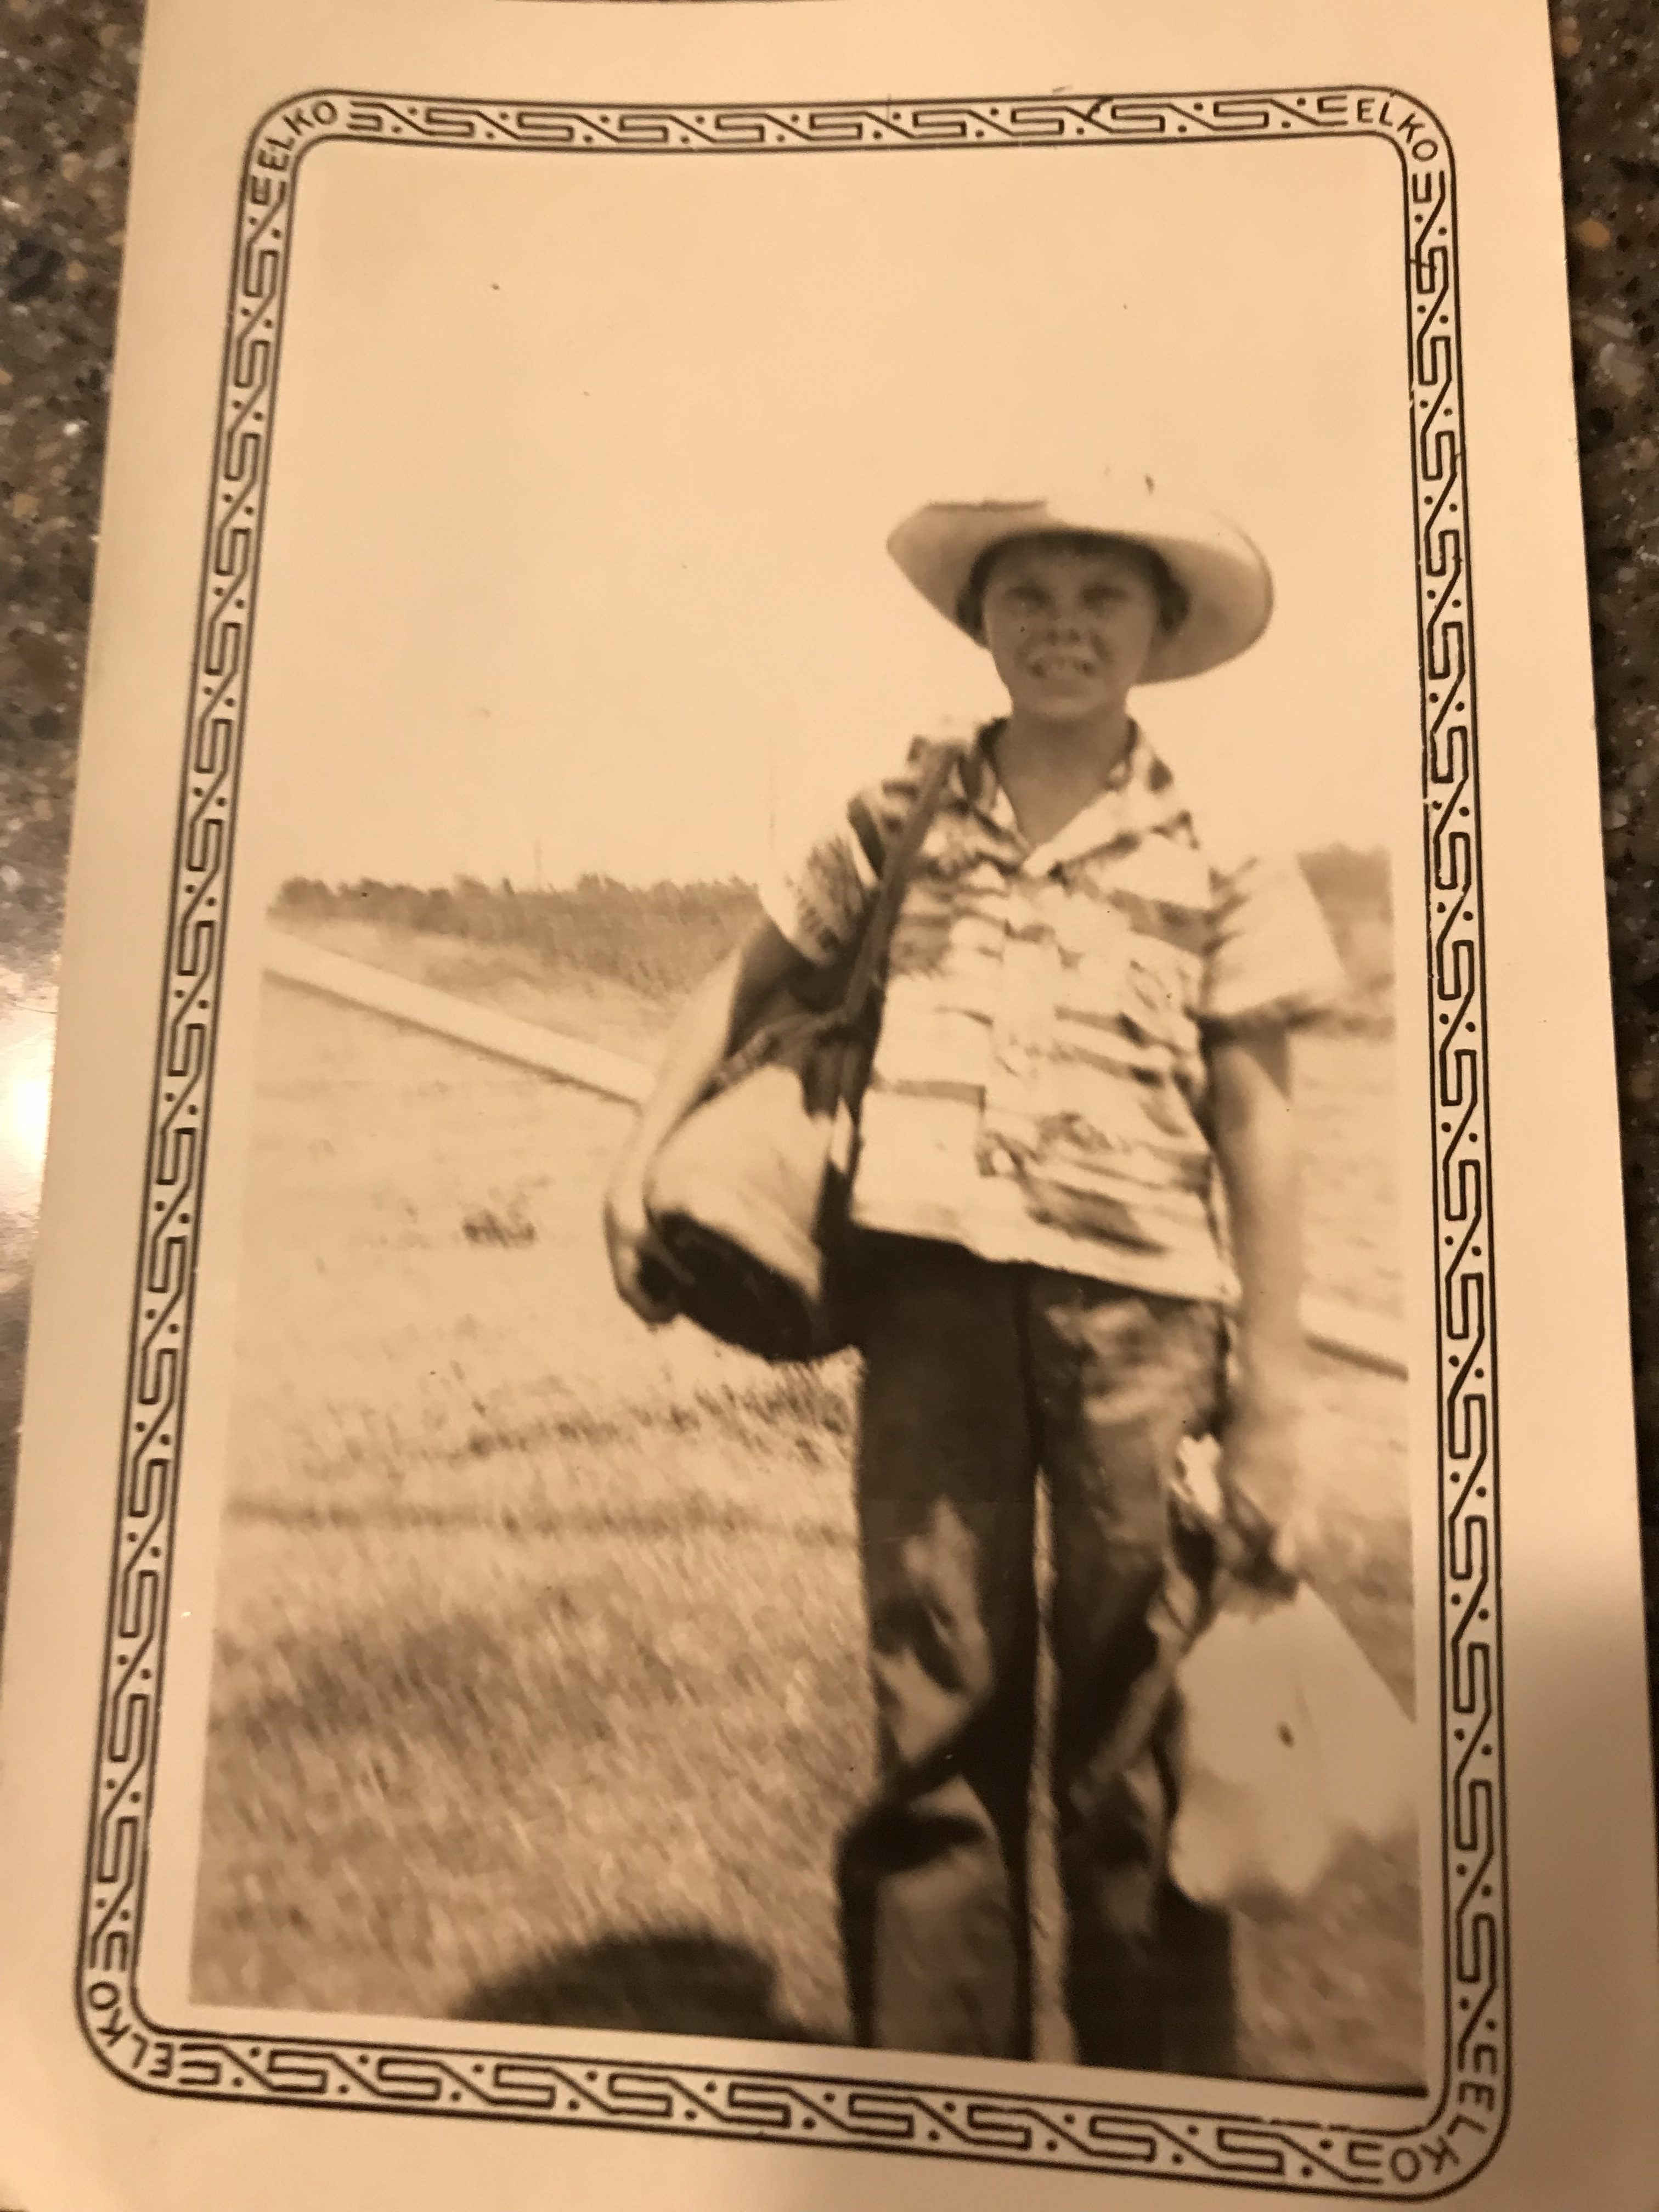 Leisure in The Great Depression: Fishing - Dirt Poor